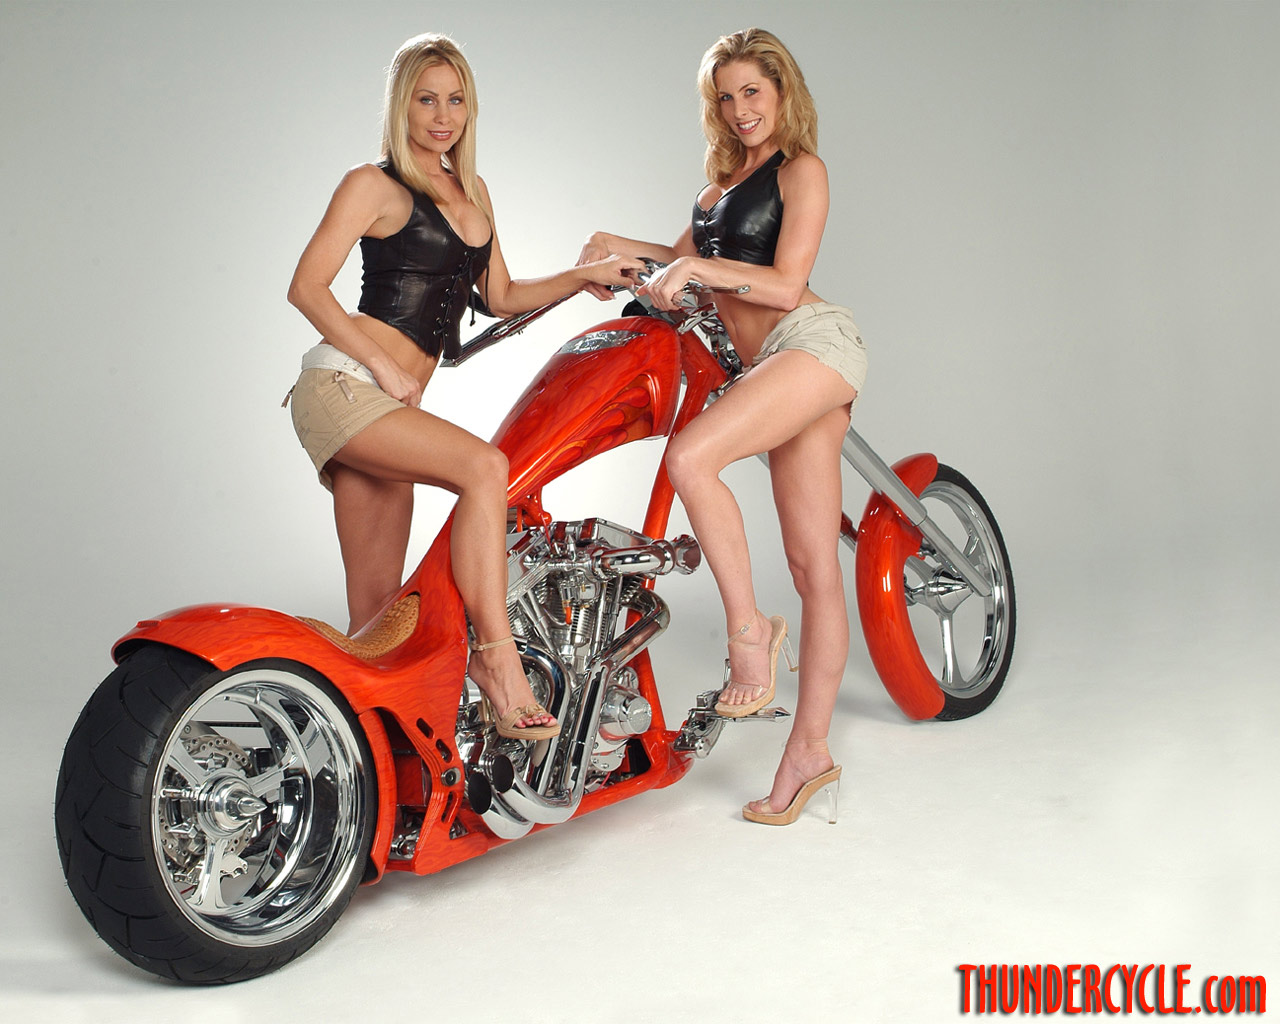 Certainly not Custom chopper motorcycles and girls apologise